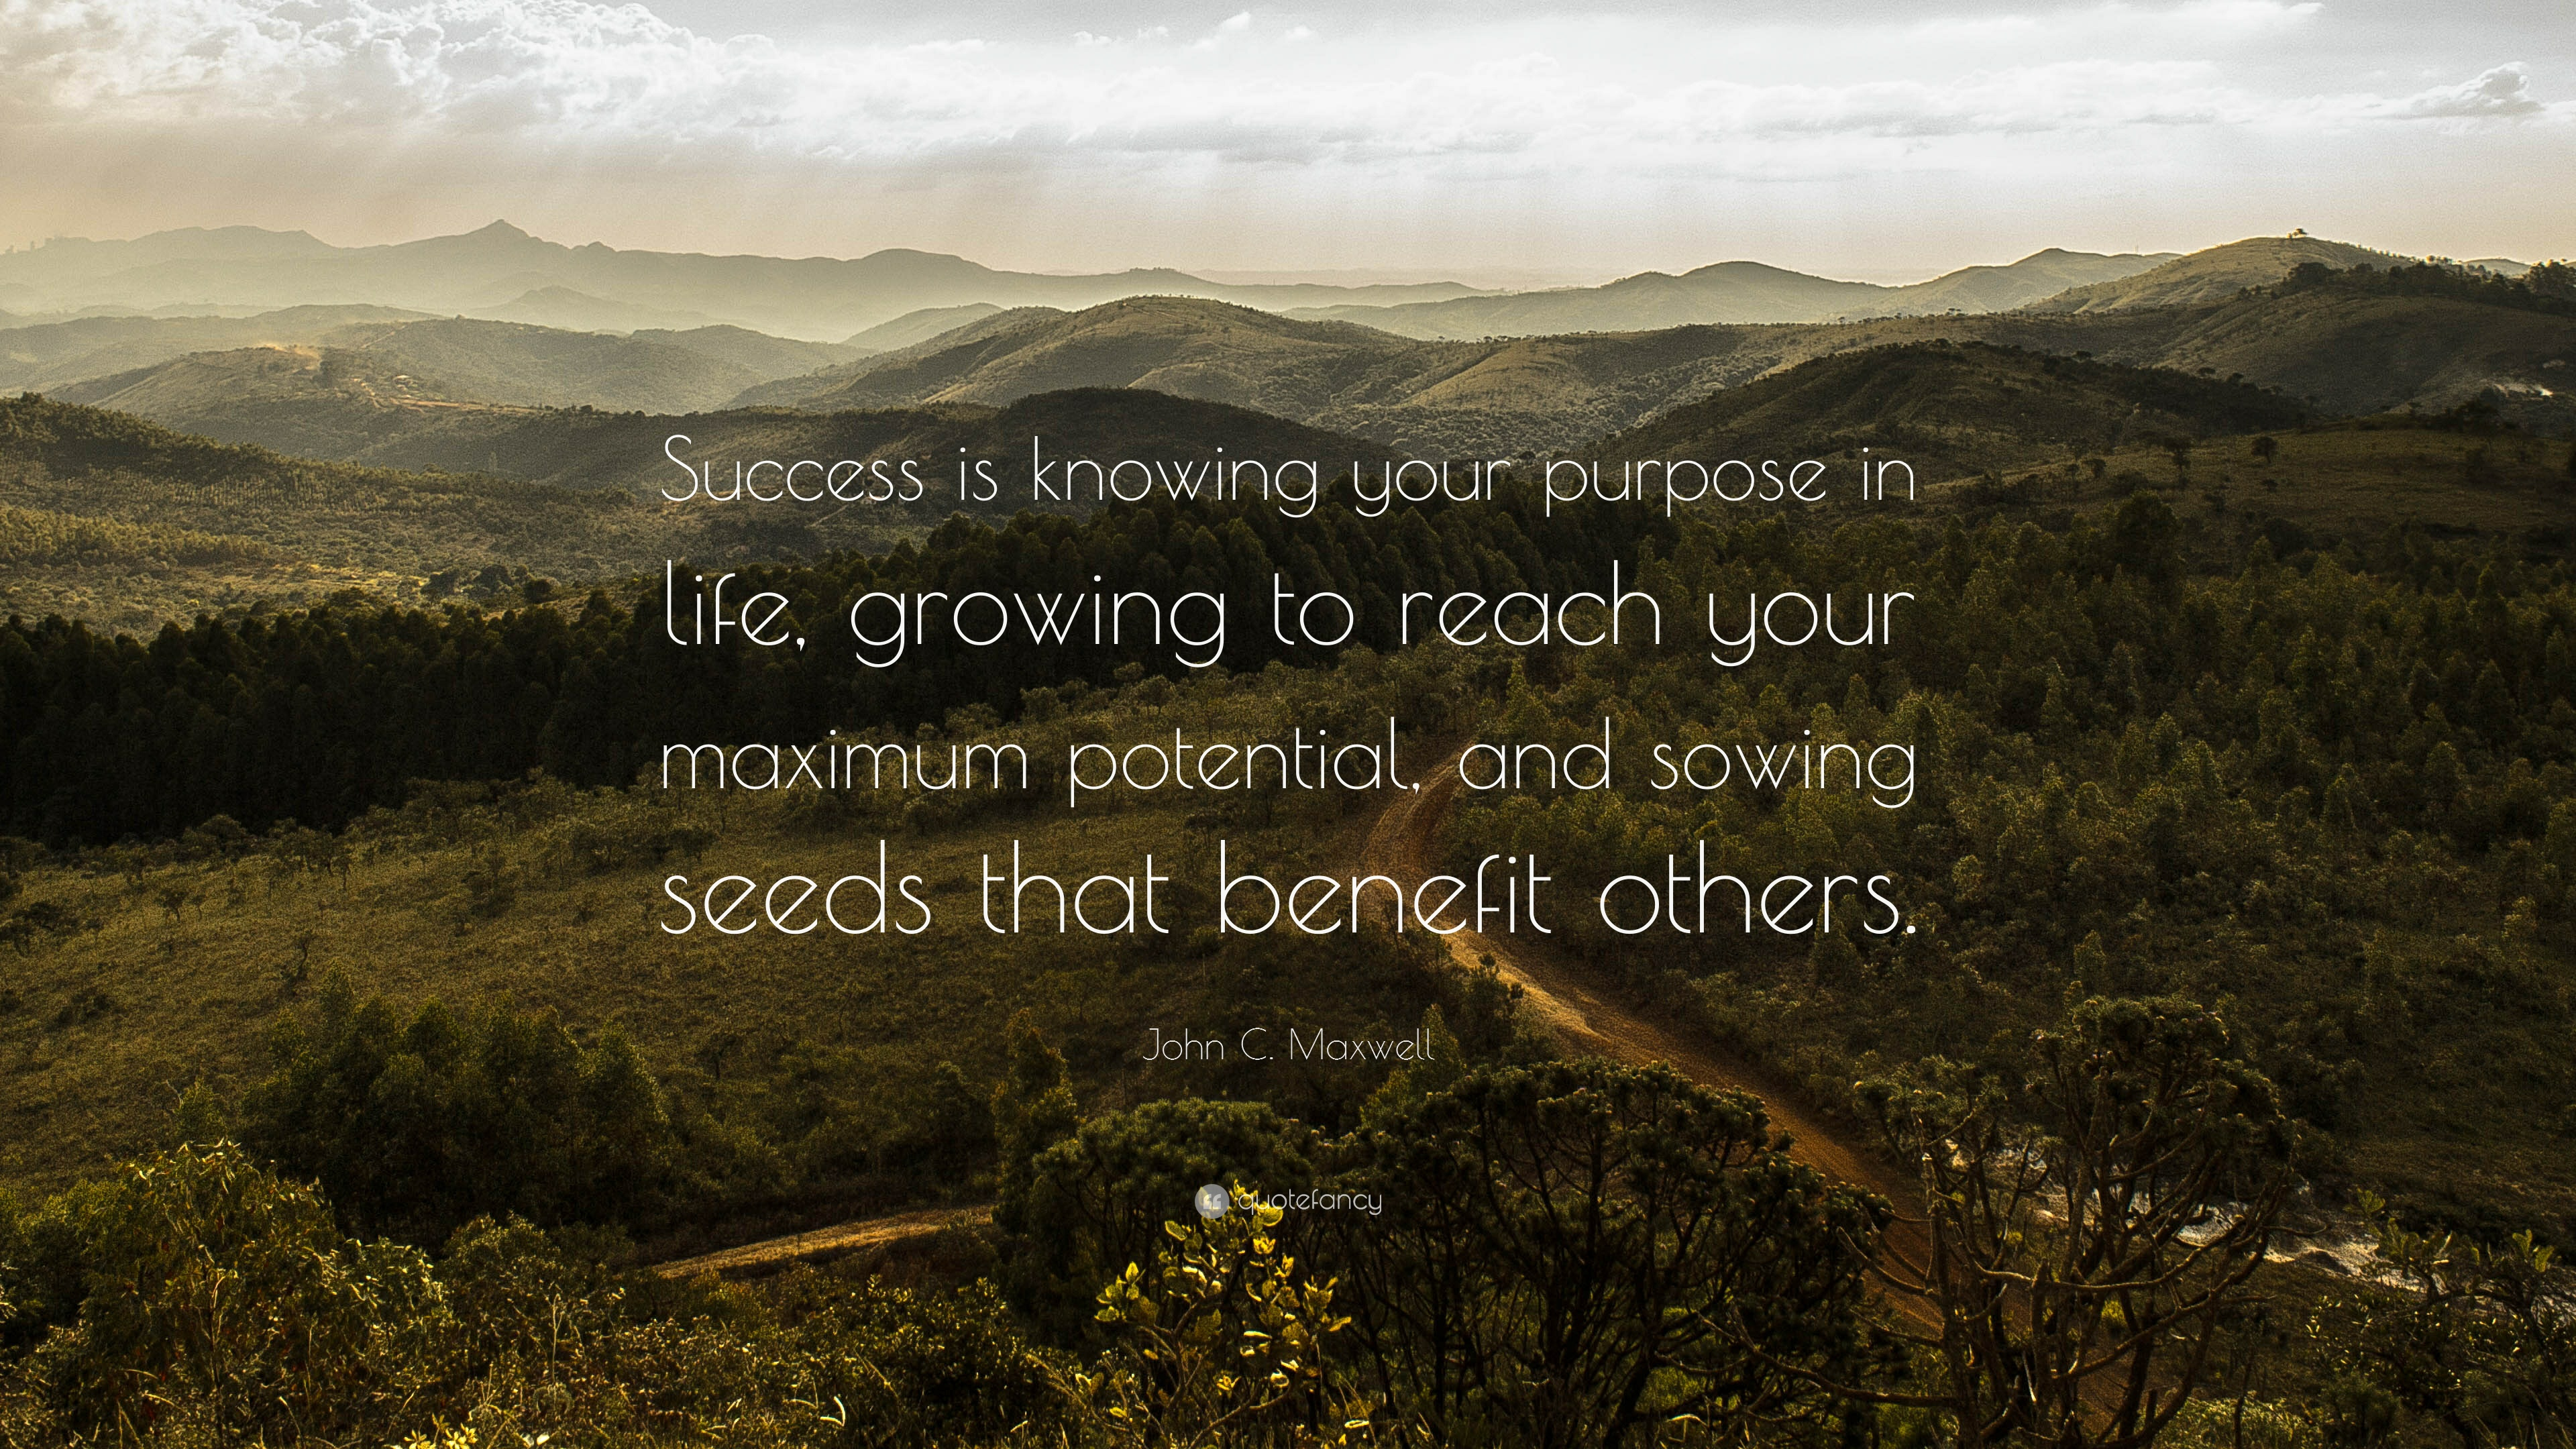 Hunter S Thompson Quote Wallpaper John C Maxwell Quote Success Is Knowing Your Purpose In